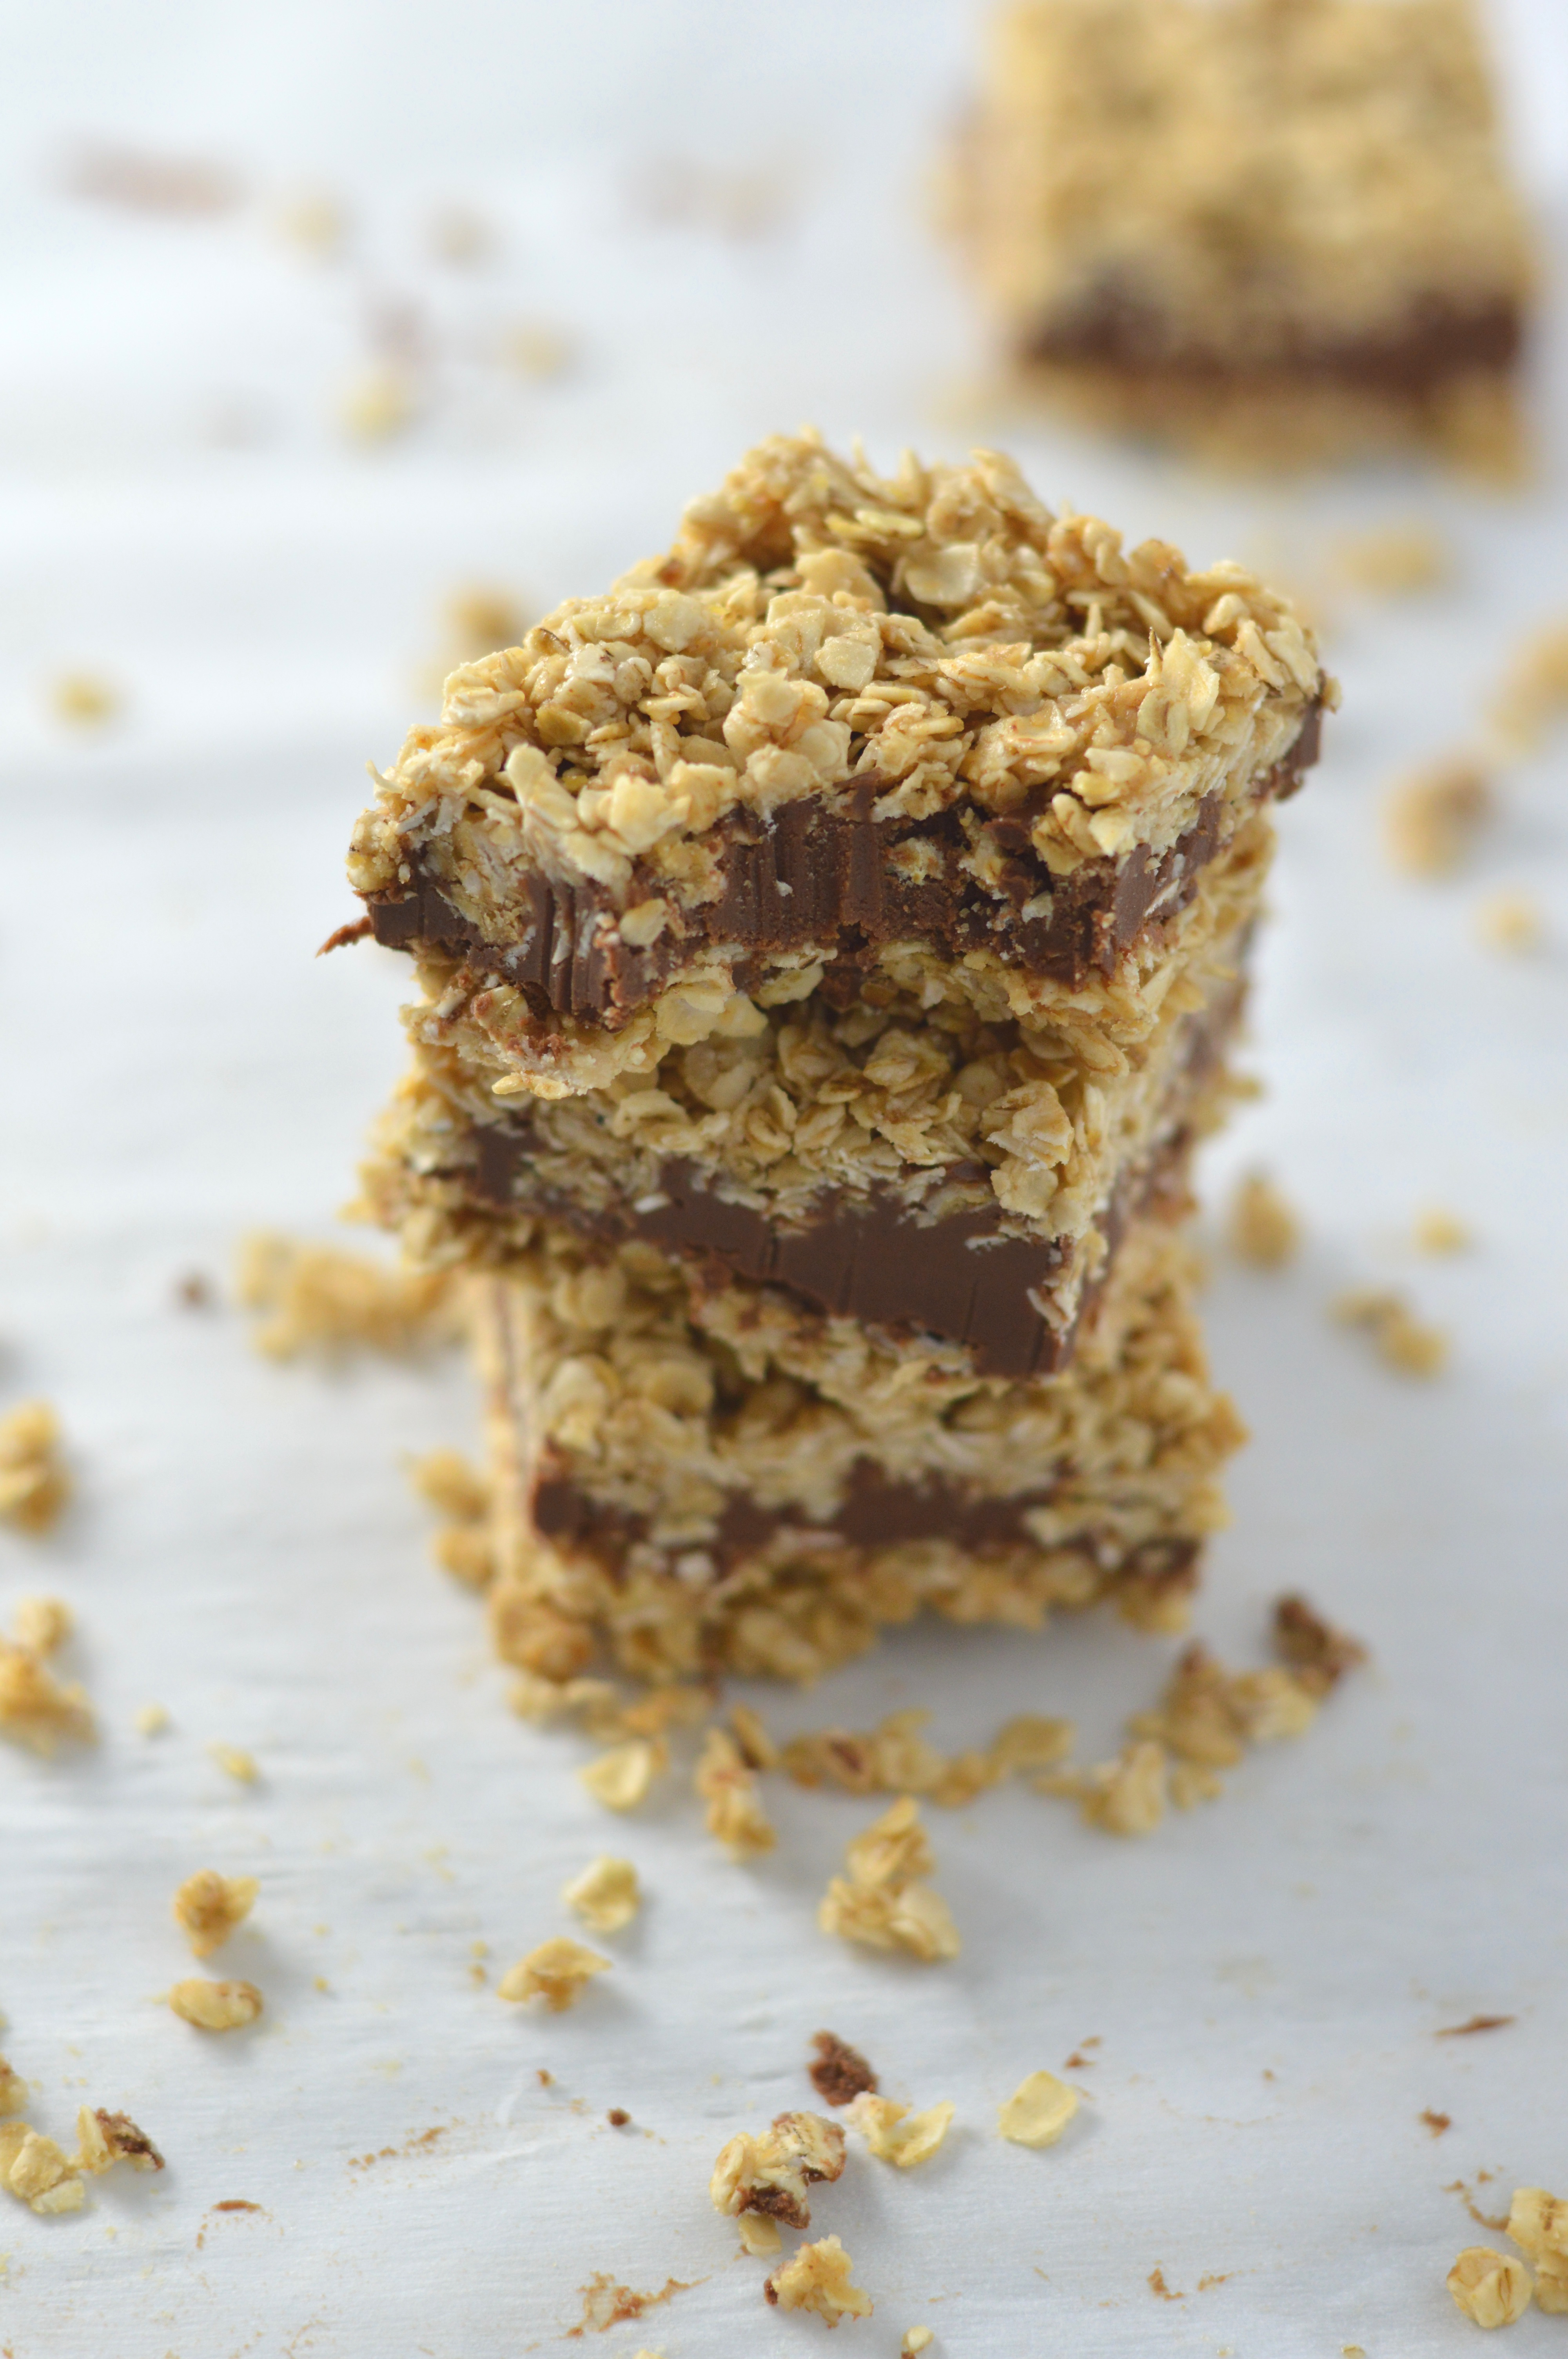 No Bake Peanut Butter and Chocolate Oat Fudge Bars | A ...